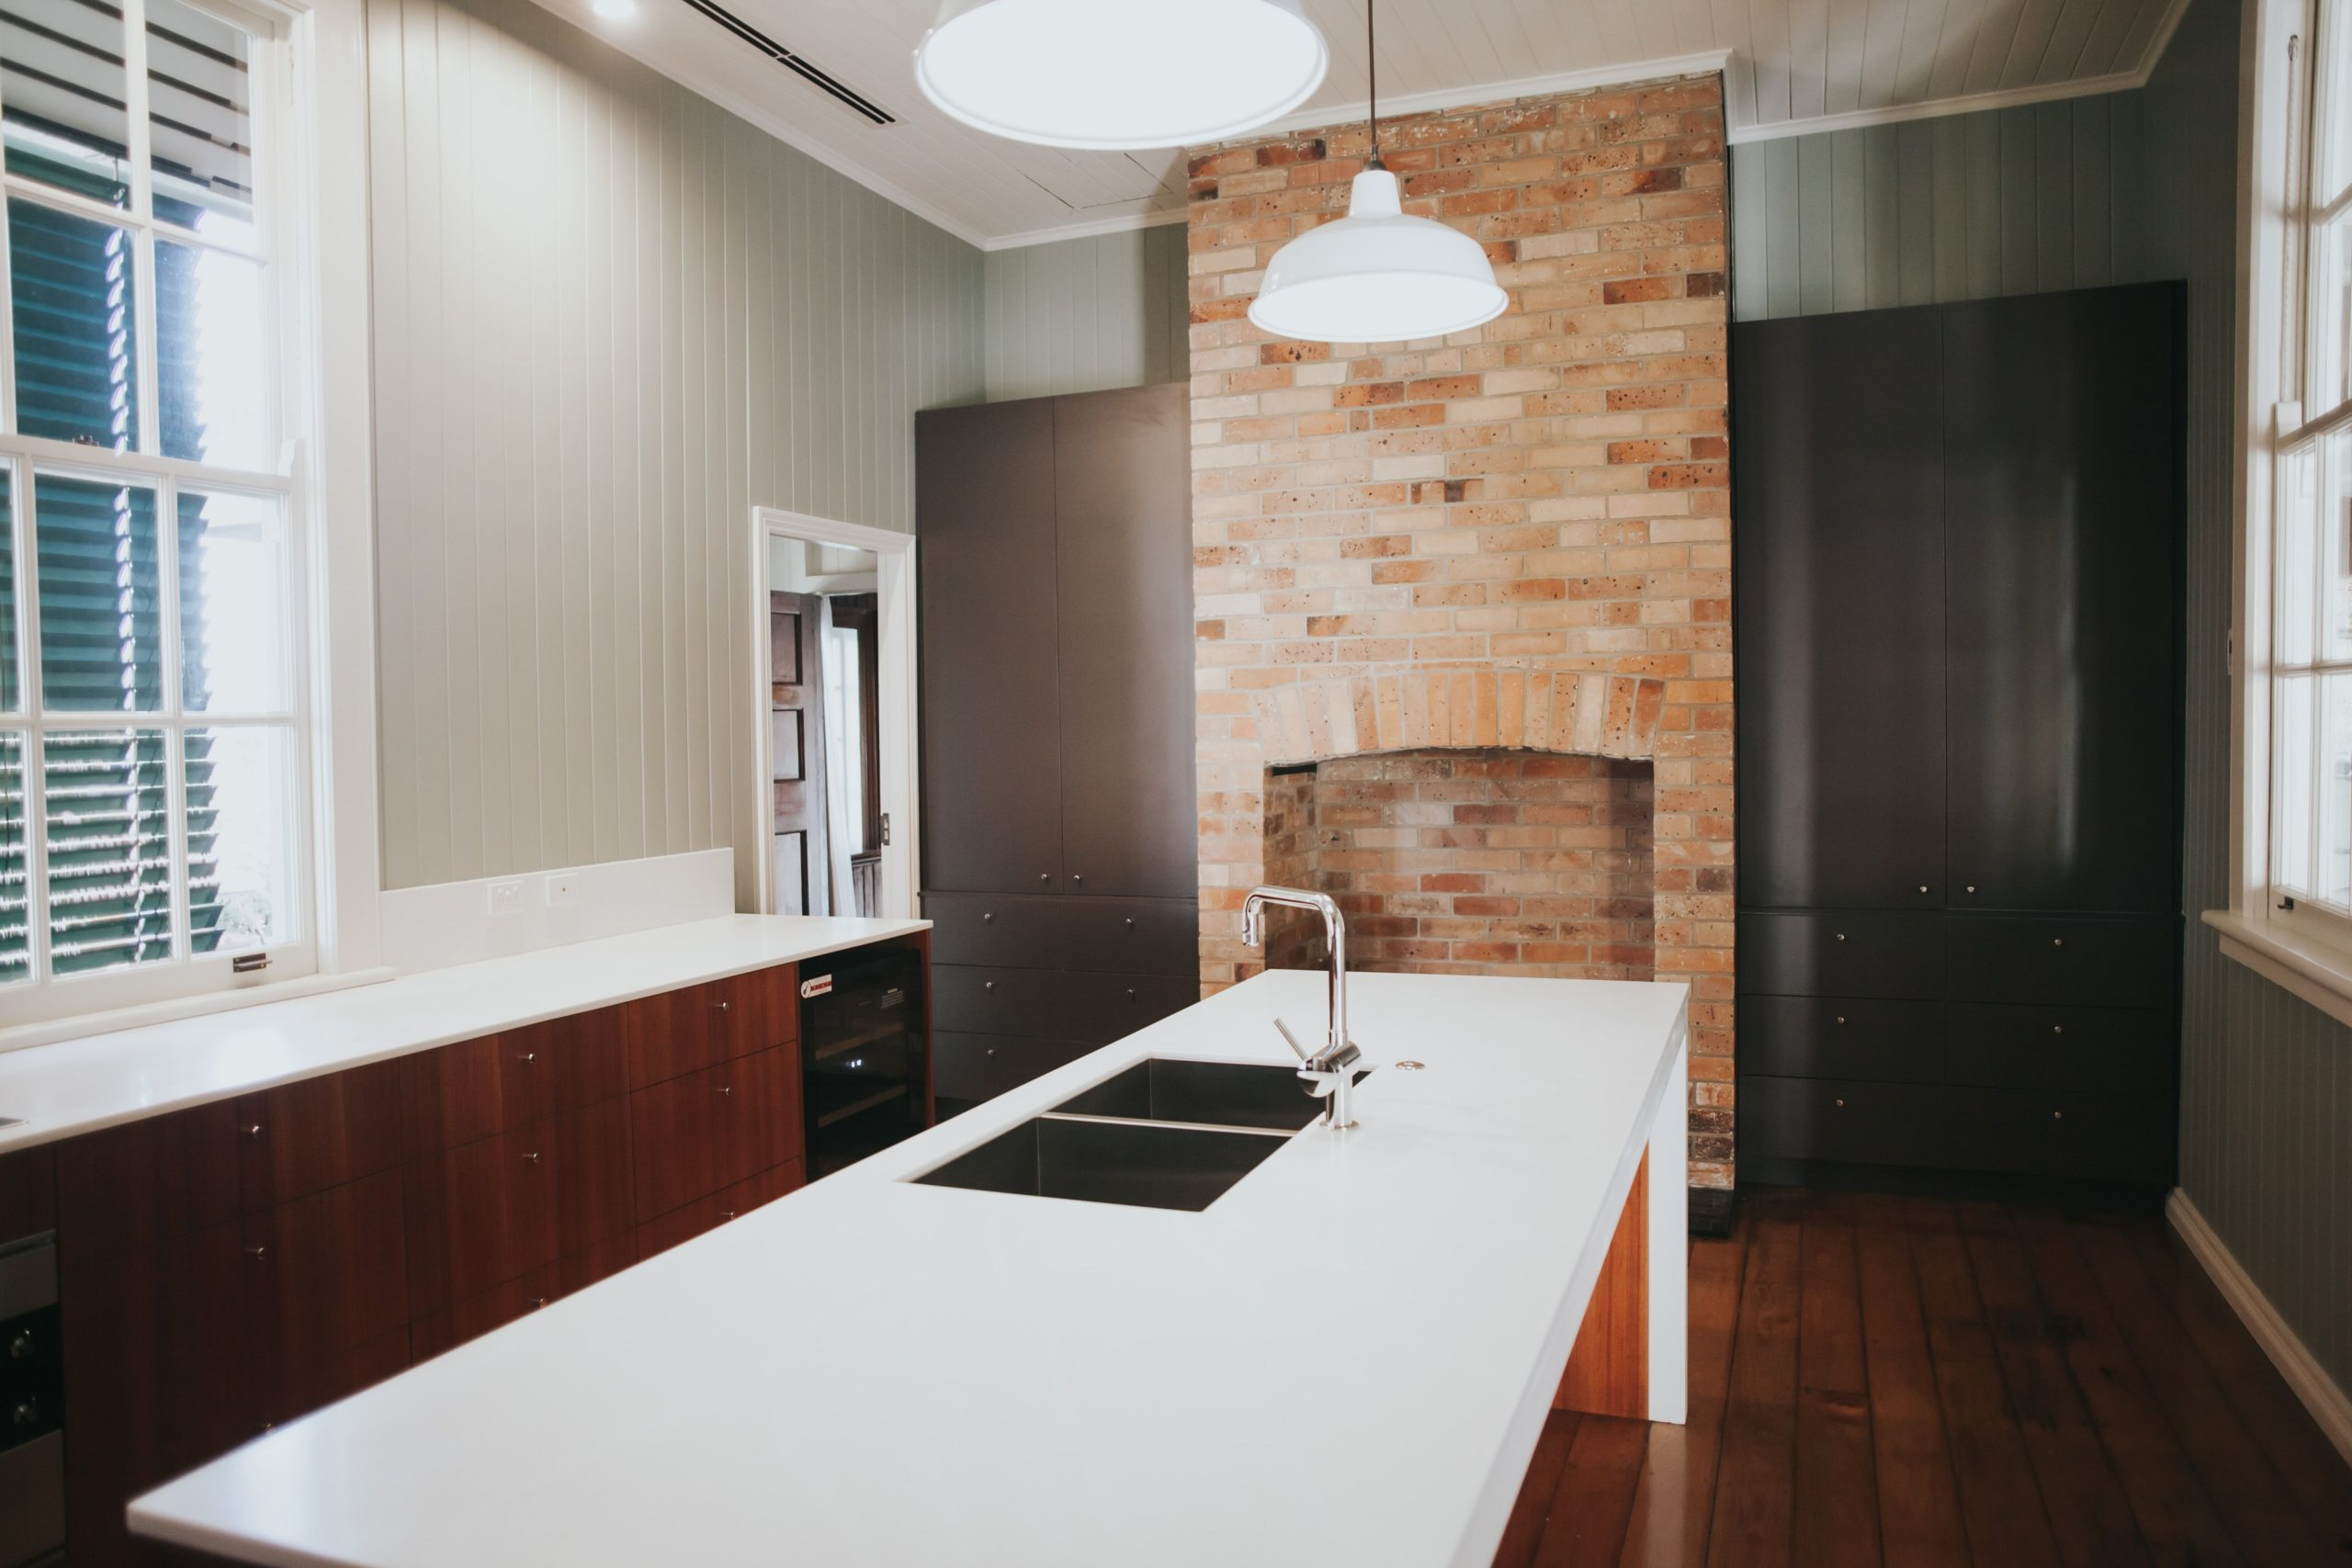 wall covering ideas for kitchen